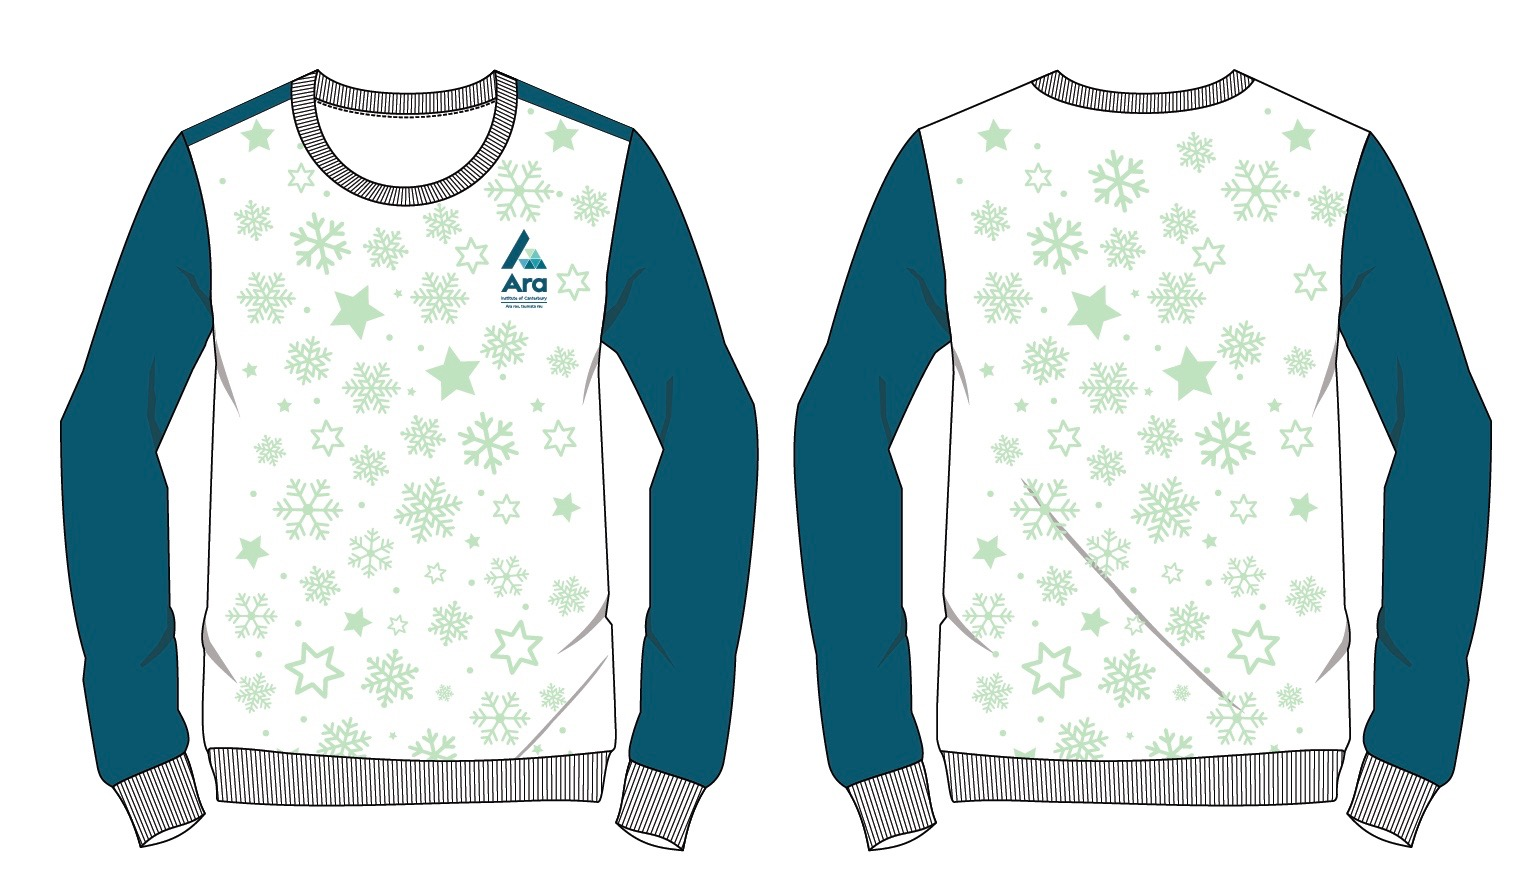 Ara Christmas Sweater Withers Co